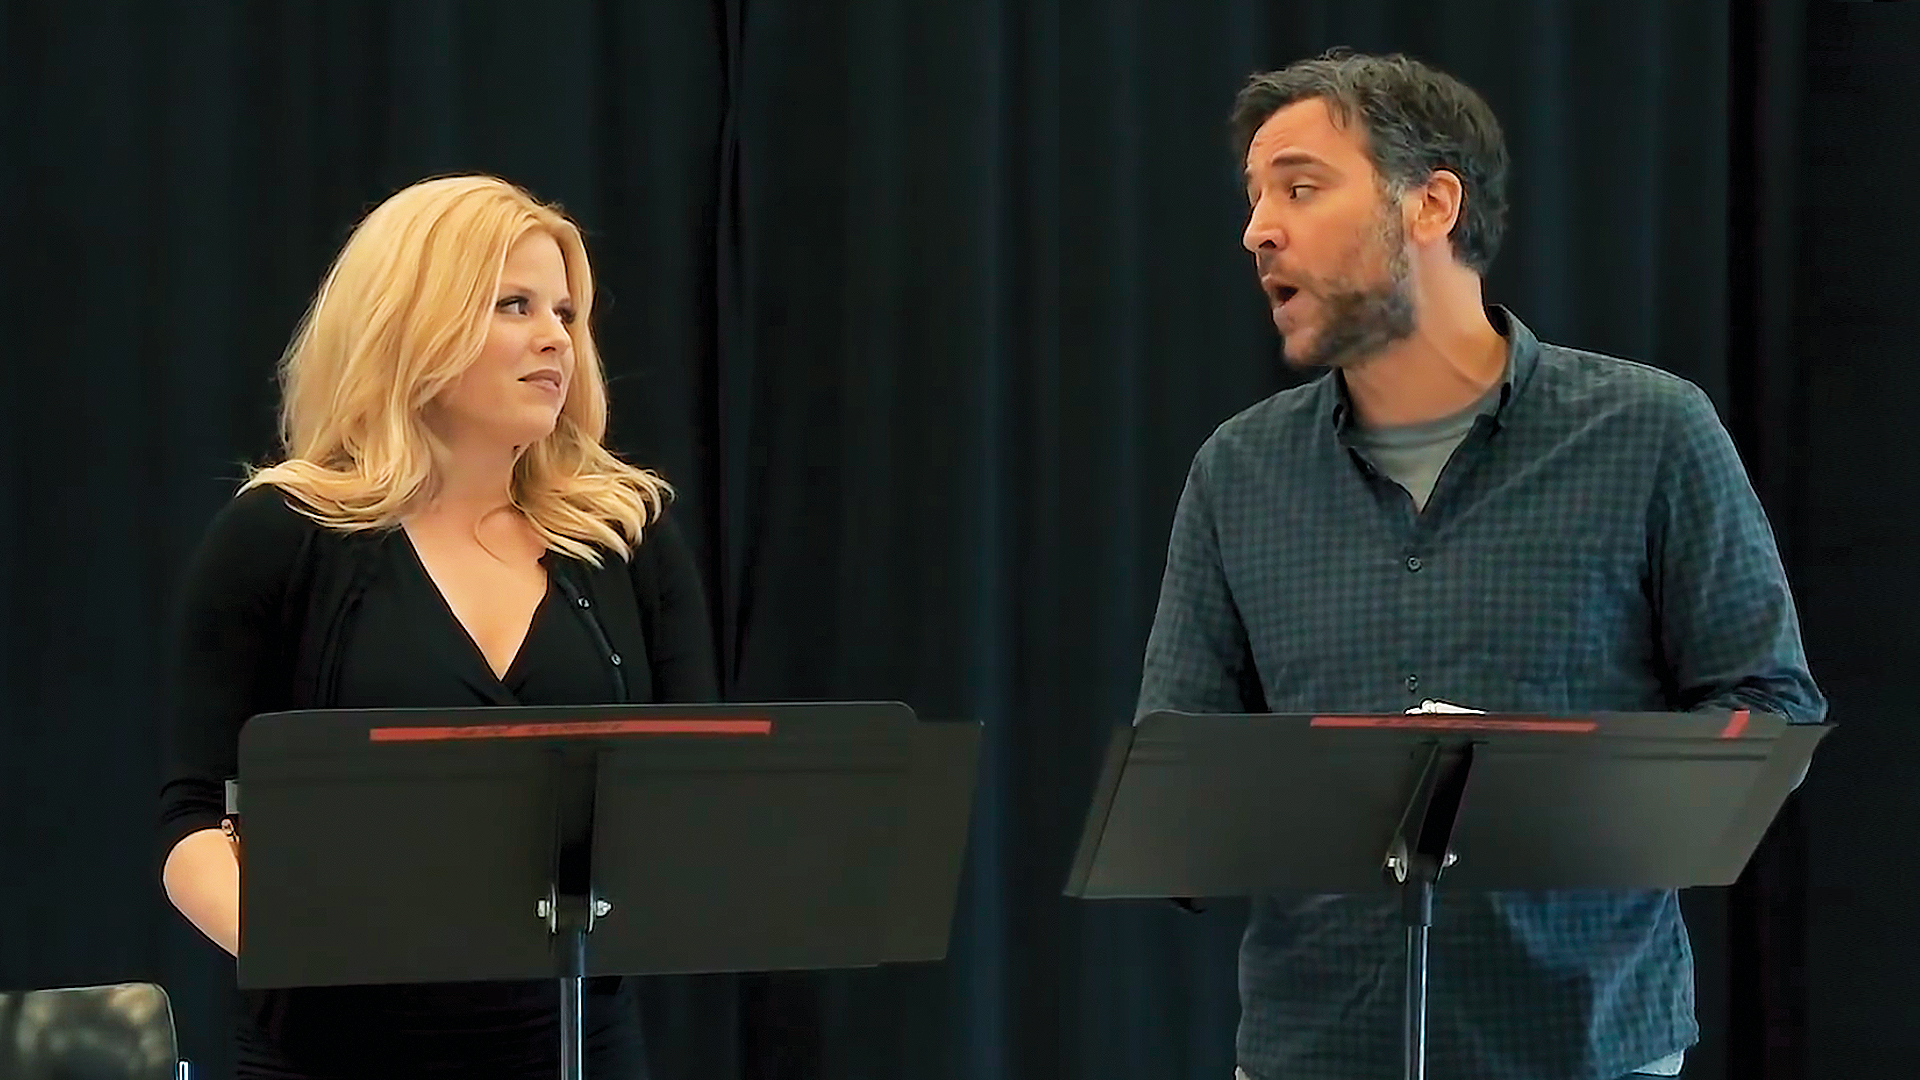 Josh Radnor, Megan Hilty, and More Take Us to Their Little Shop of Horrors